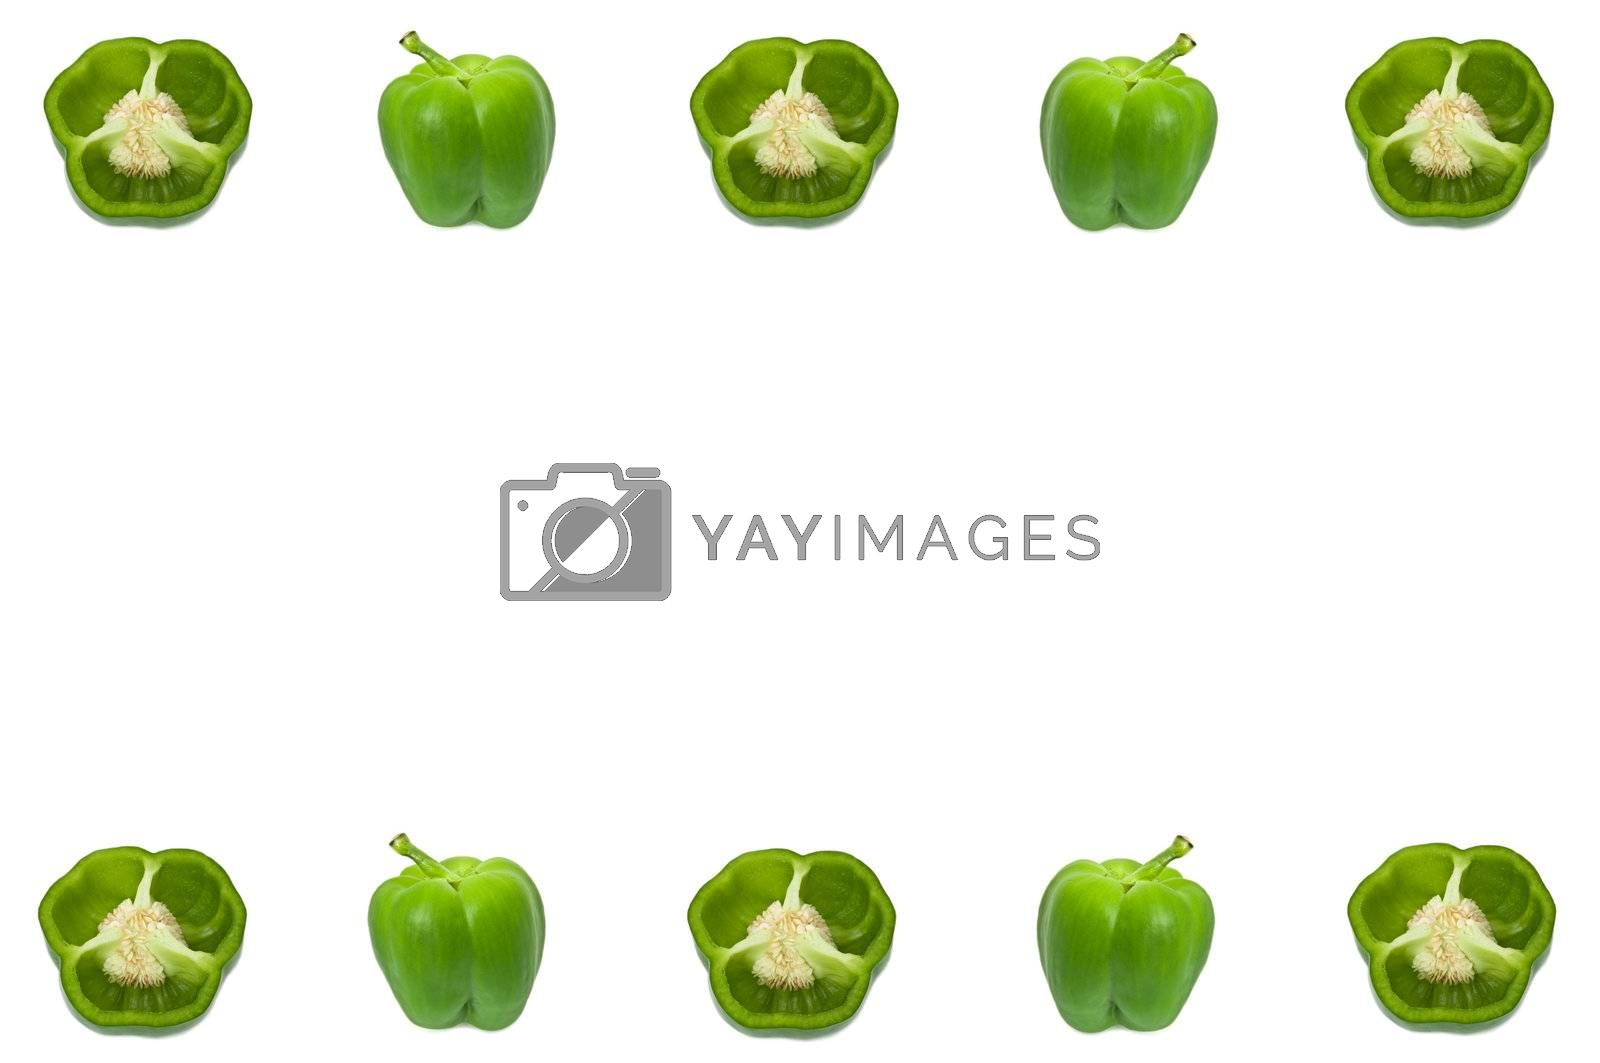 Several small halved and whole green peppers arranged along the border of the image over white.